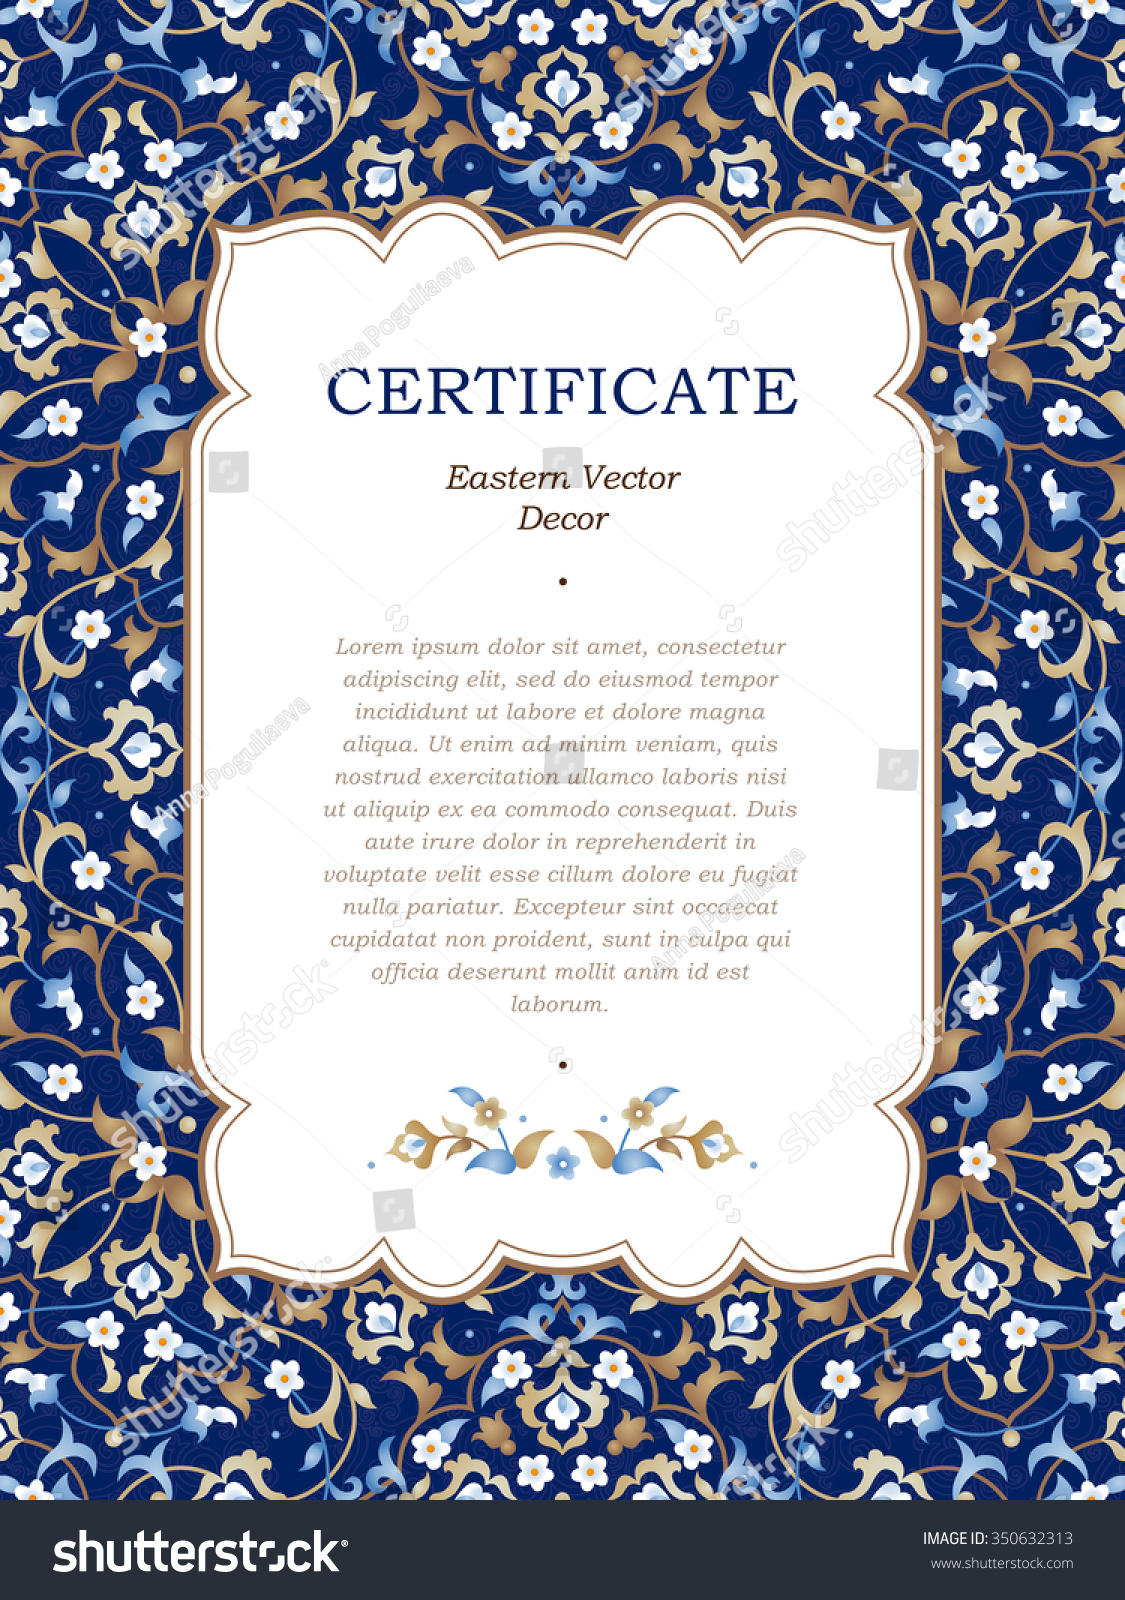 Certificate official certificate template business invoice template official certificate template contract for services template stock vector vector floral frame in eastern style certificate xflitez Gallery